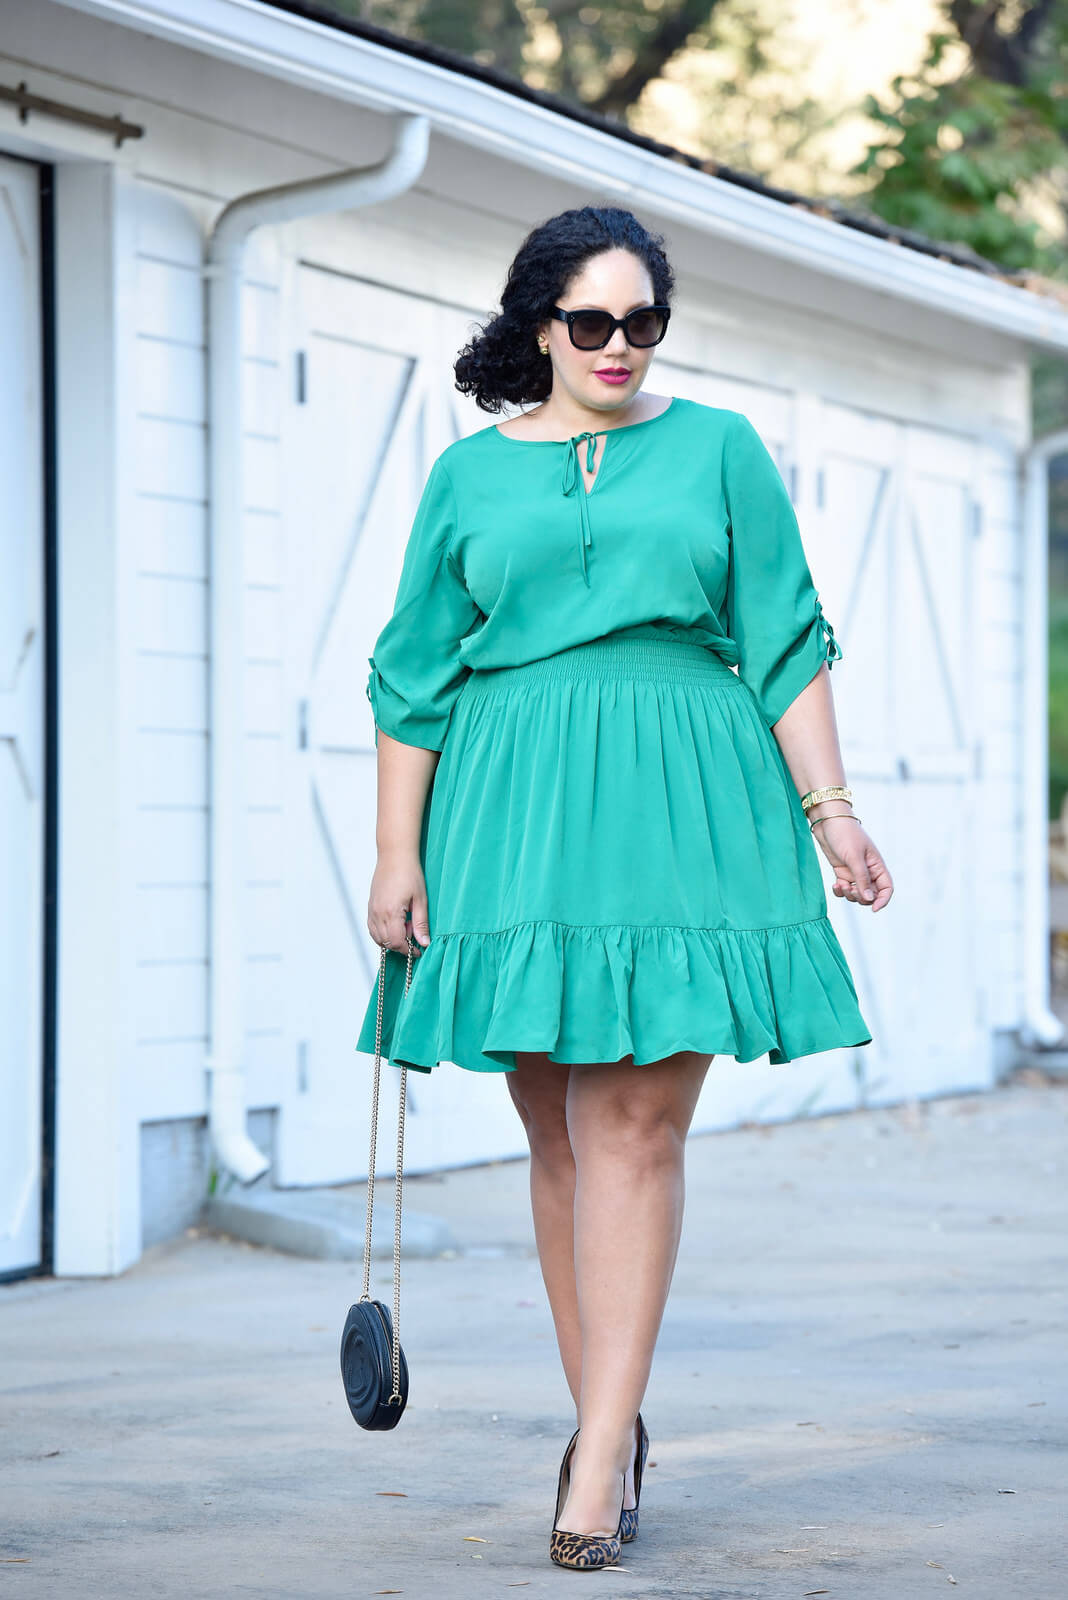 Make a statement with an unexpected color via @GirlWithCurves